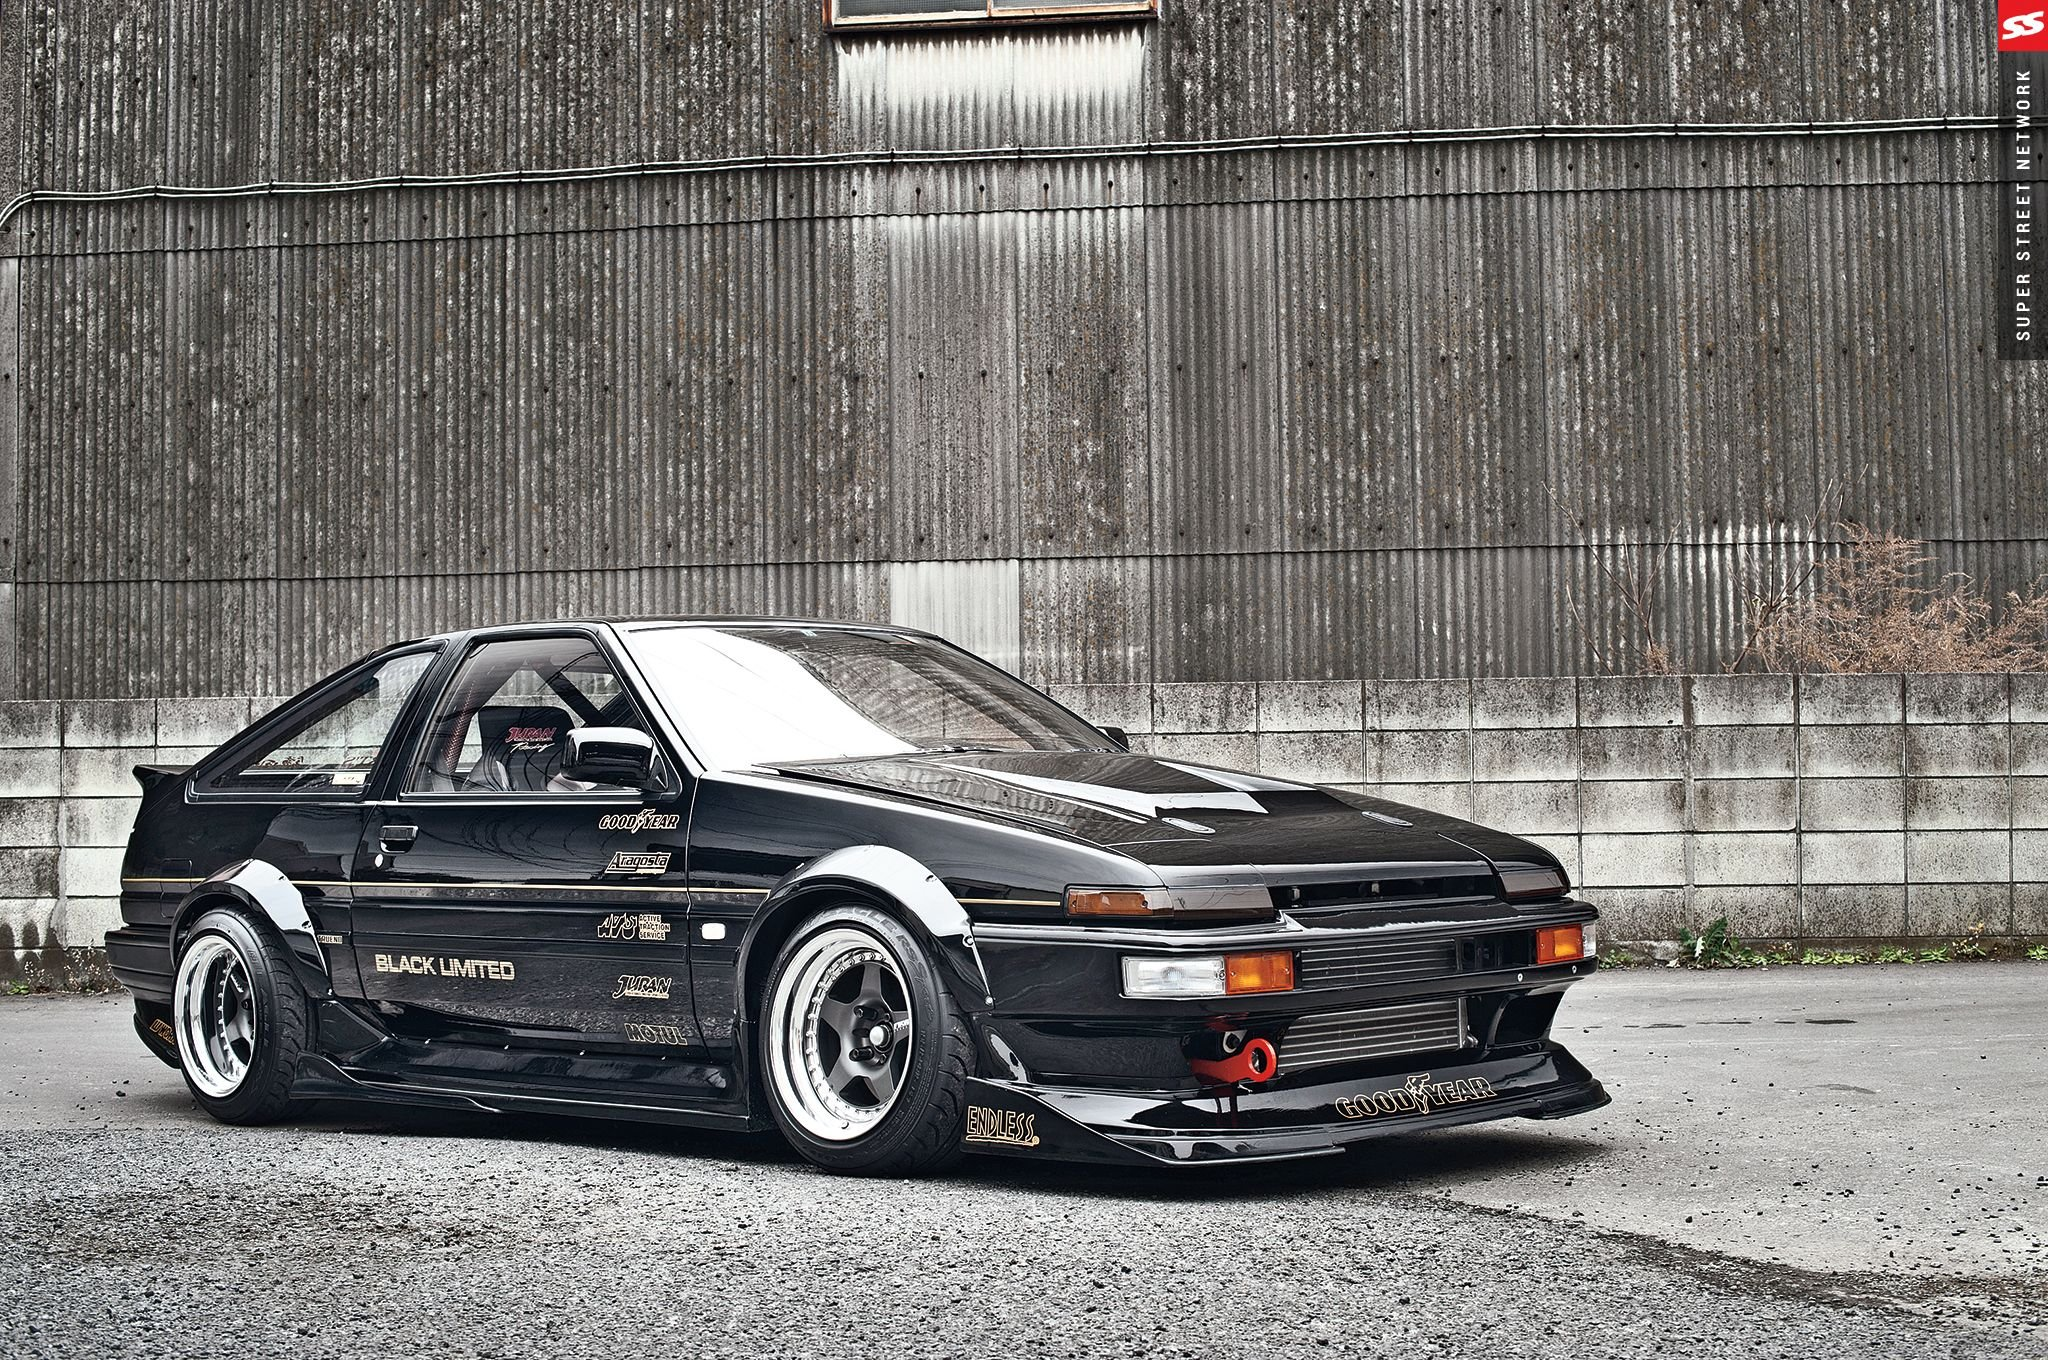 ae86 toyota corollas cars modified wallpaper 2048x1360 922856 wallpaperup. Black Bedroom Furniture Sets. Home Design Ideas